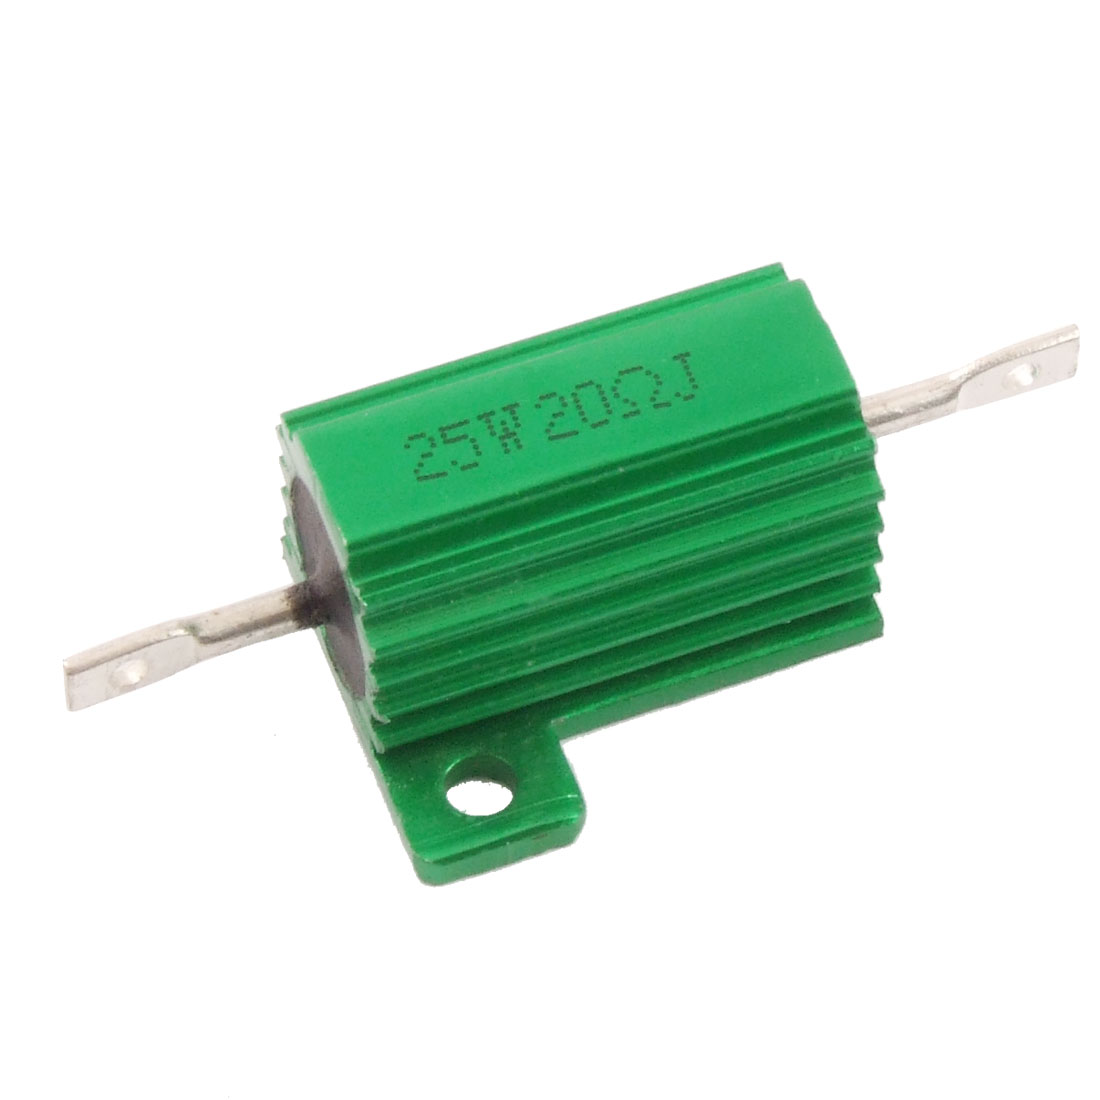 Green 25 Watt 20 Ohm 5% Aluminum Housed Wire Wound Resistor